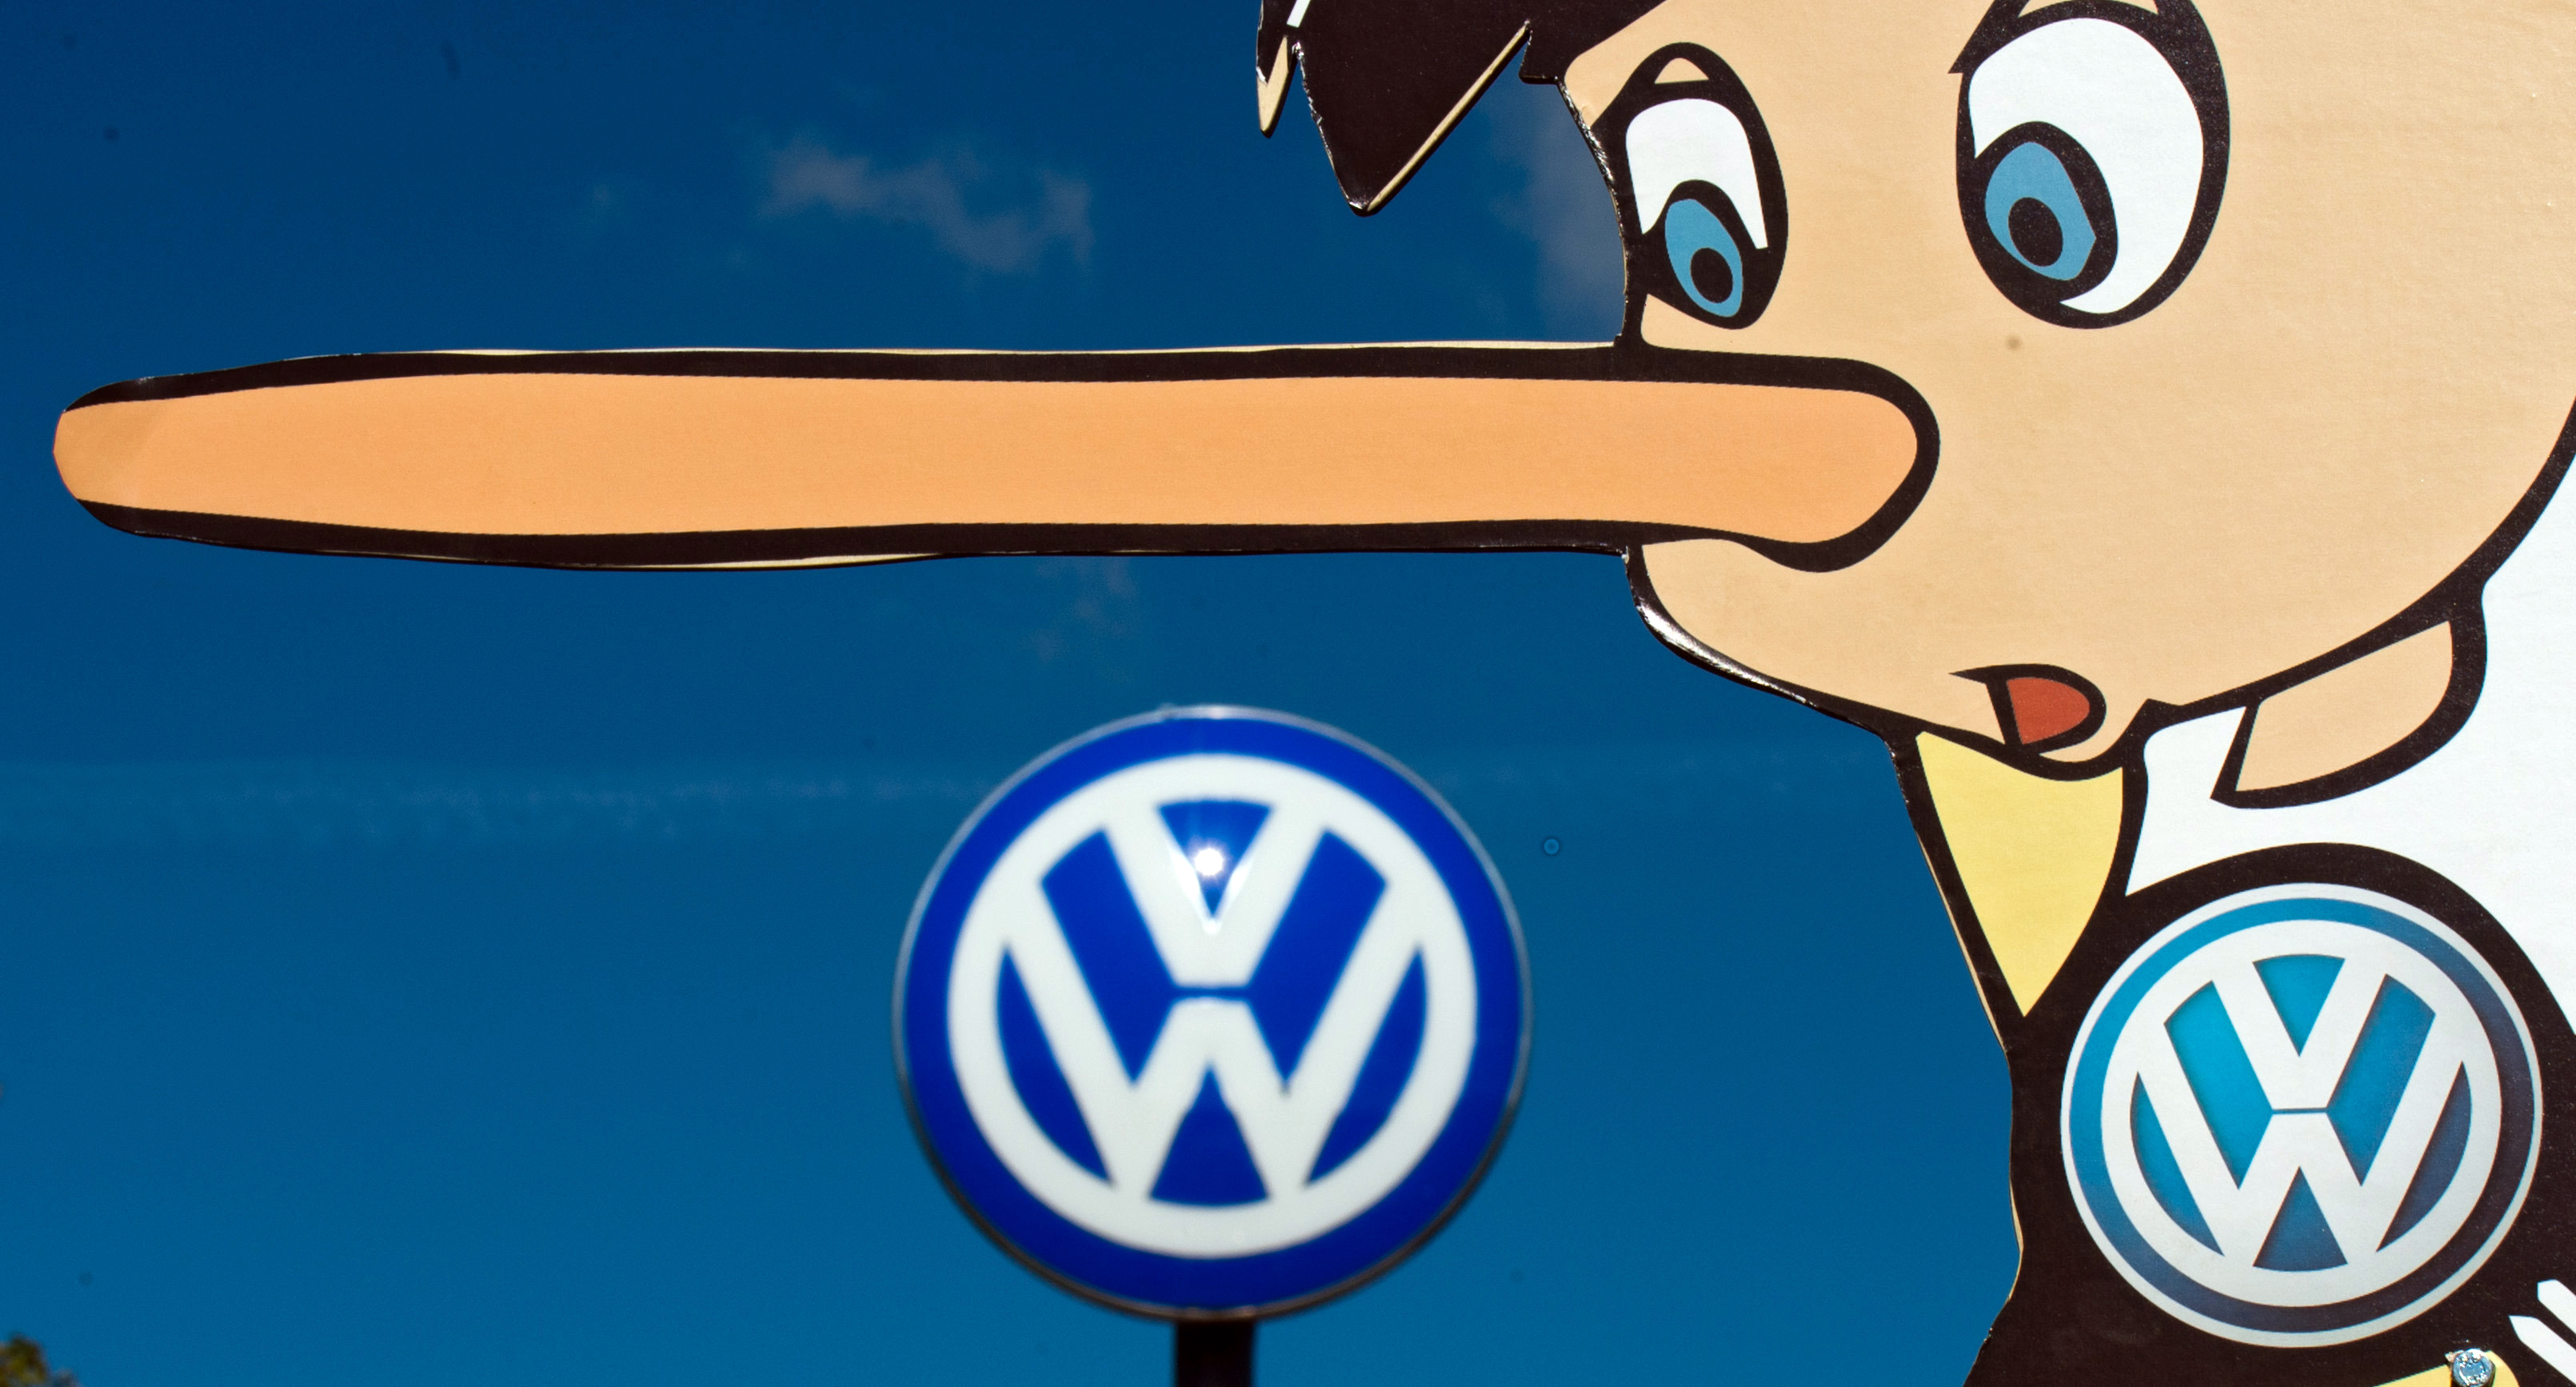 washington - vw facing 'tsunami' of legal trouble in emissions scandal